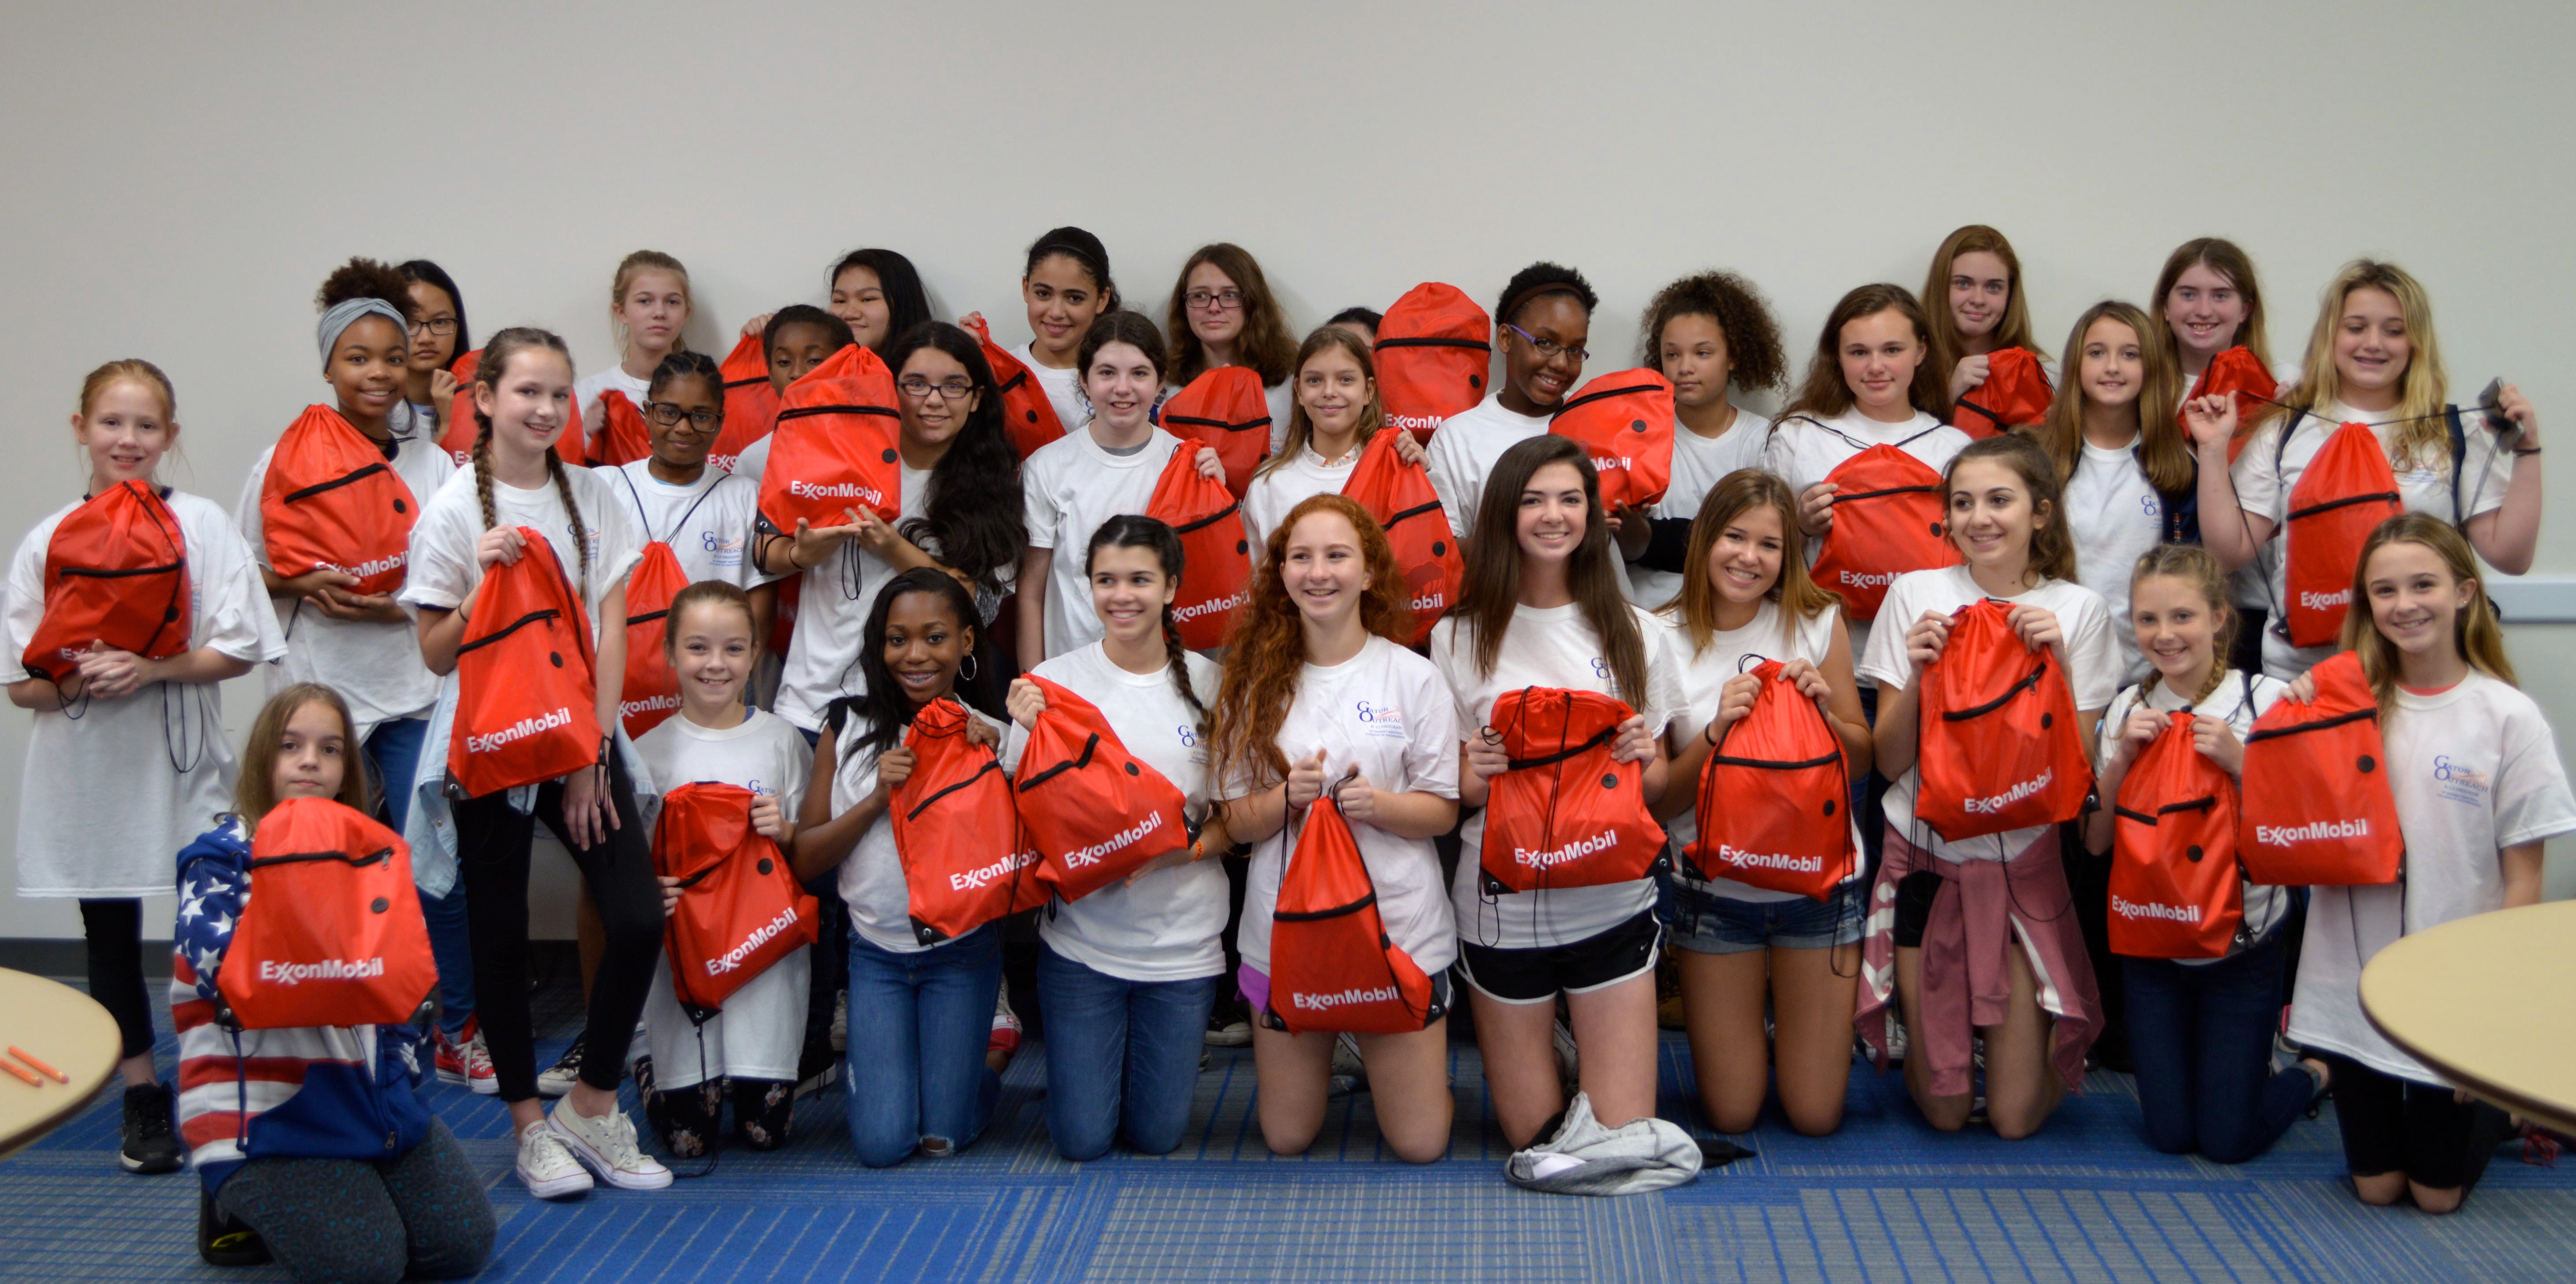 Gator Outreach & Exxon Mobil Celebrate as 34 middle school girls participate in Girls Engaged in Gator Engineering Day!!!